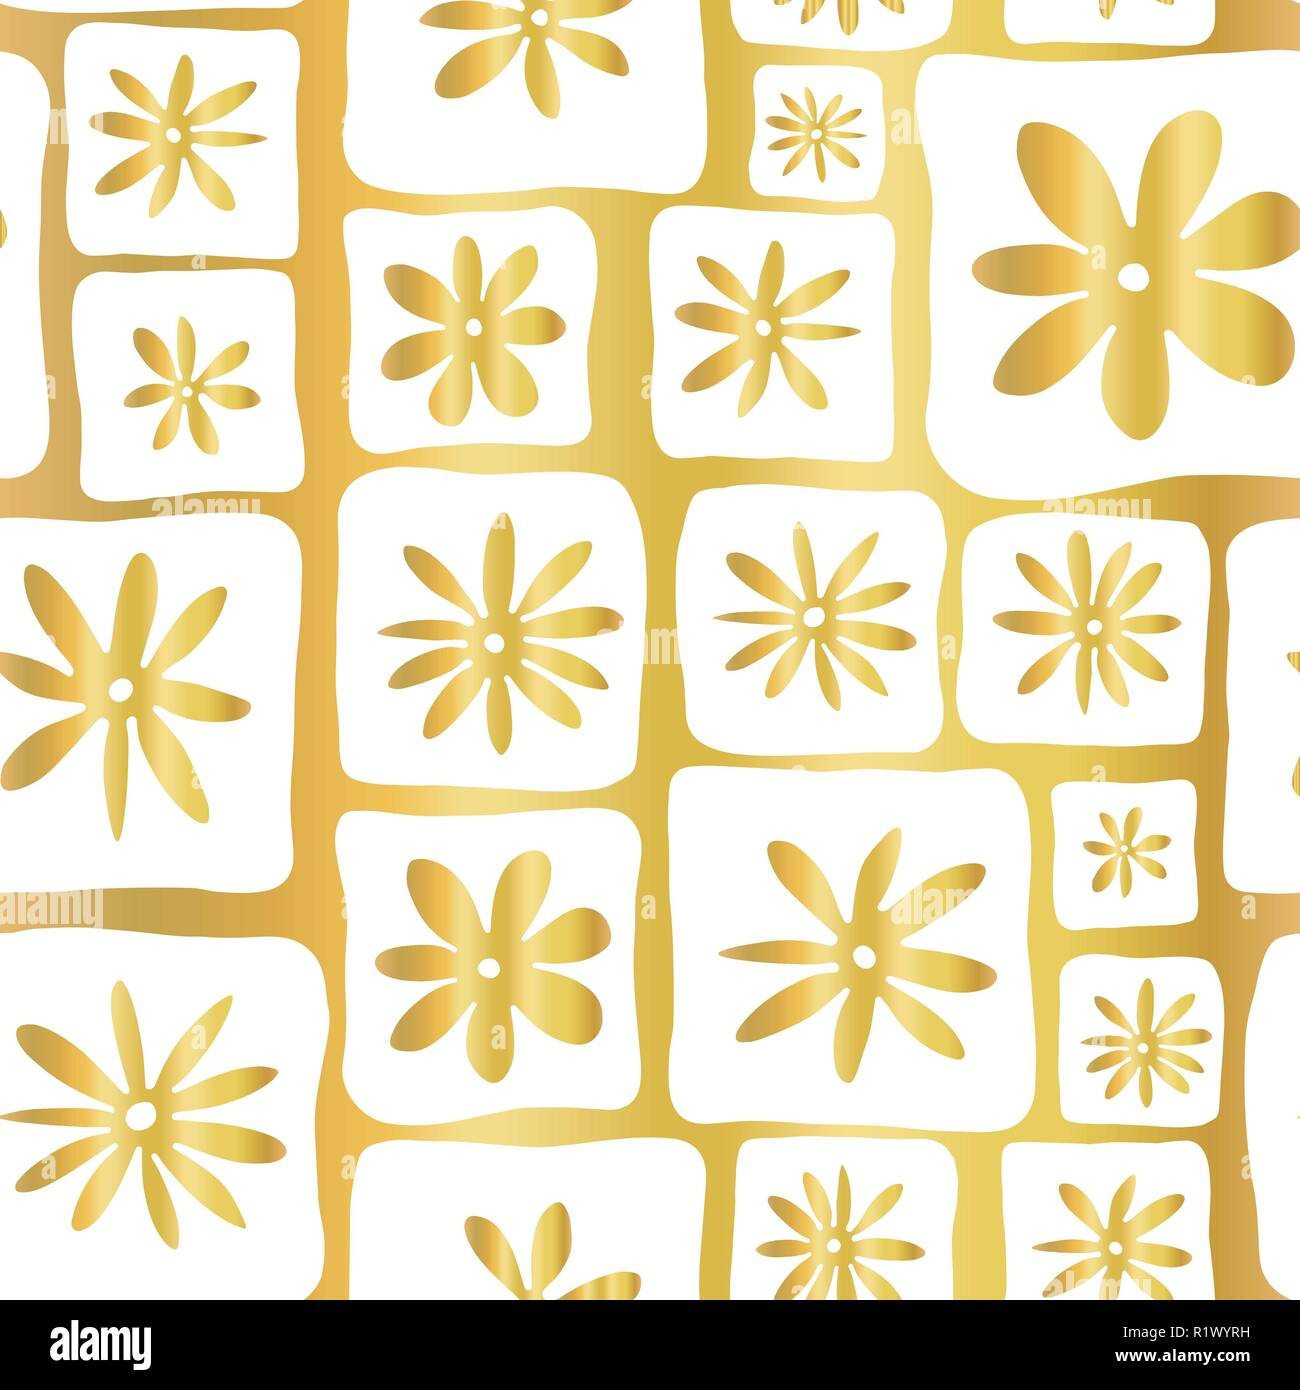 Gold Foil Doodle Flowers Seamless Vector Pattern Hand Drawn White